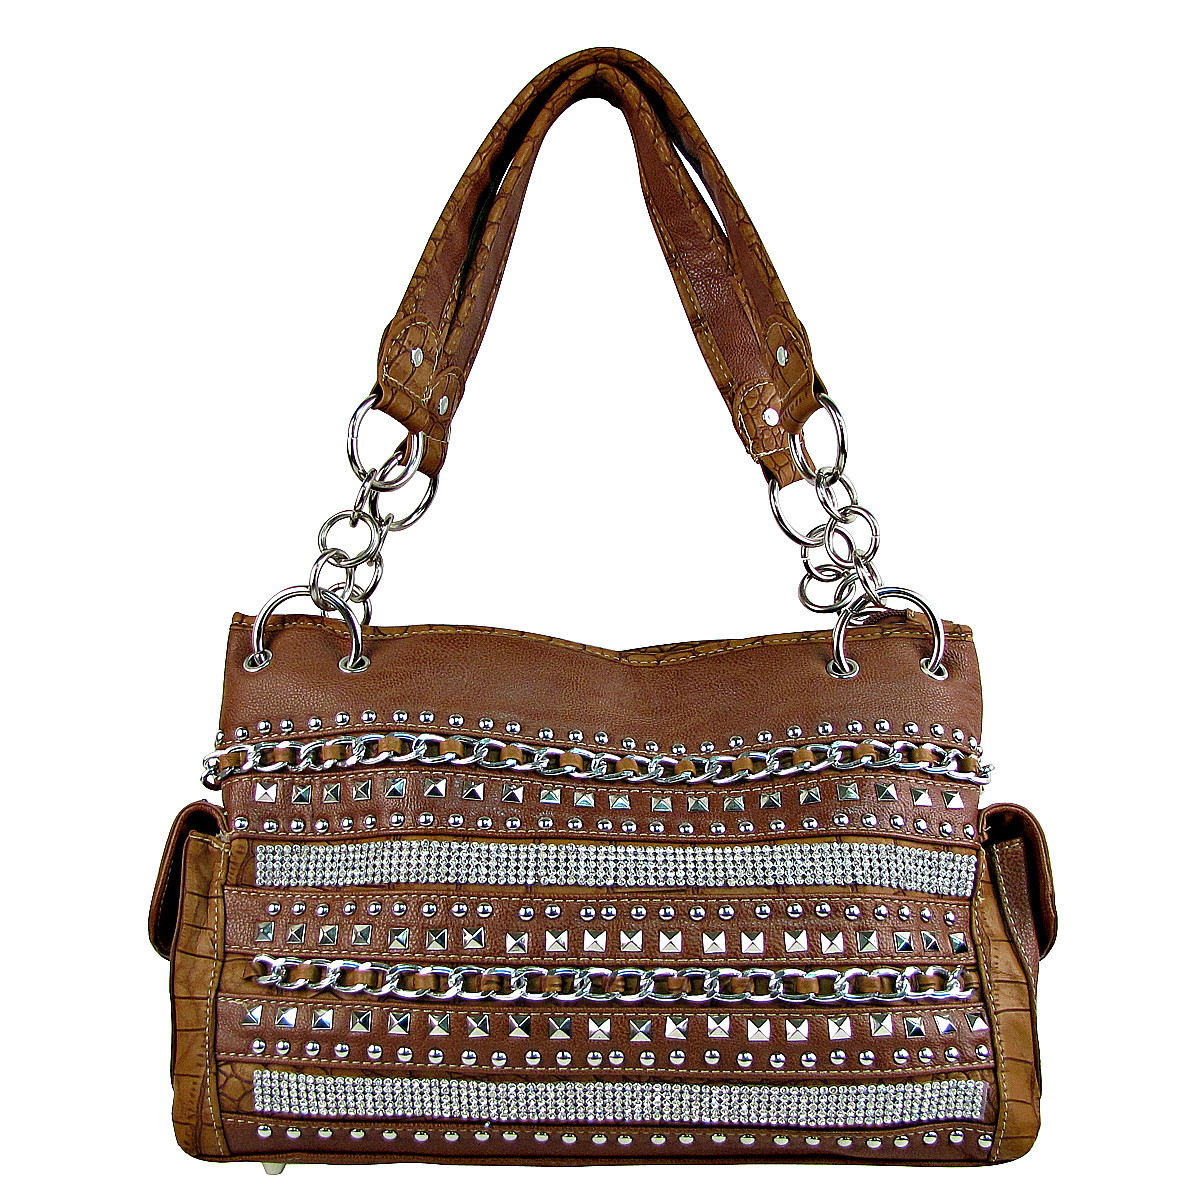 BROWN MULTI CHAIN LOOK SHOULDER HANDBAG HB1-HL1082BRN